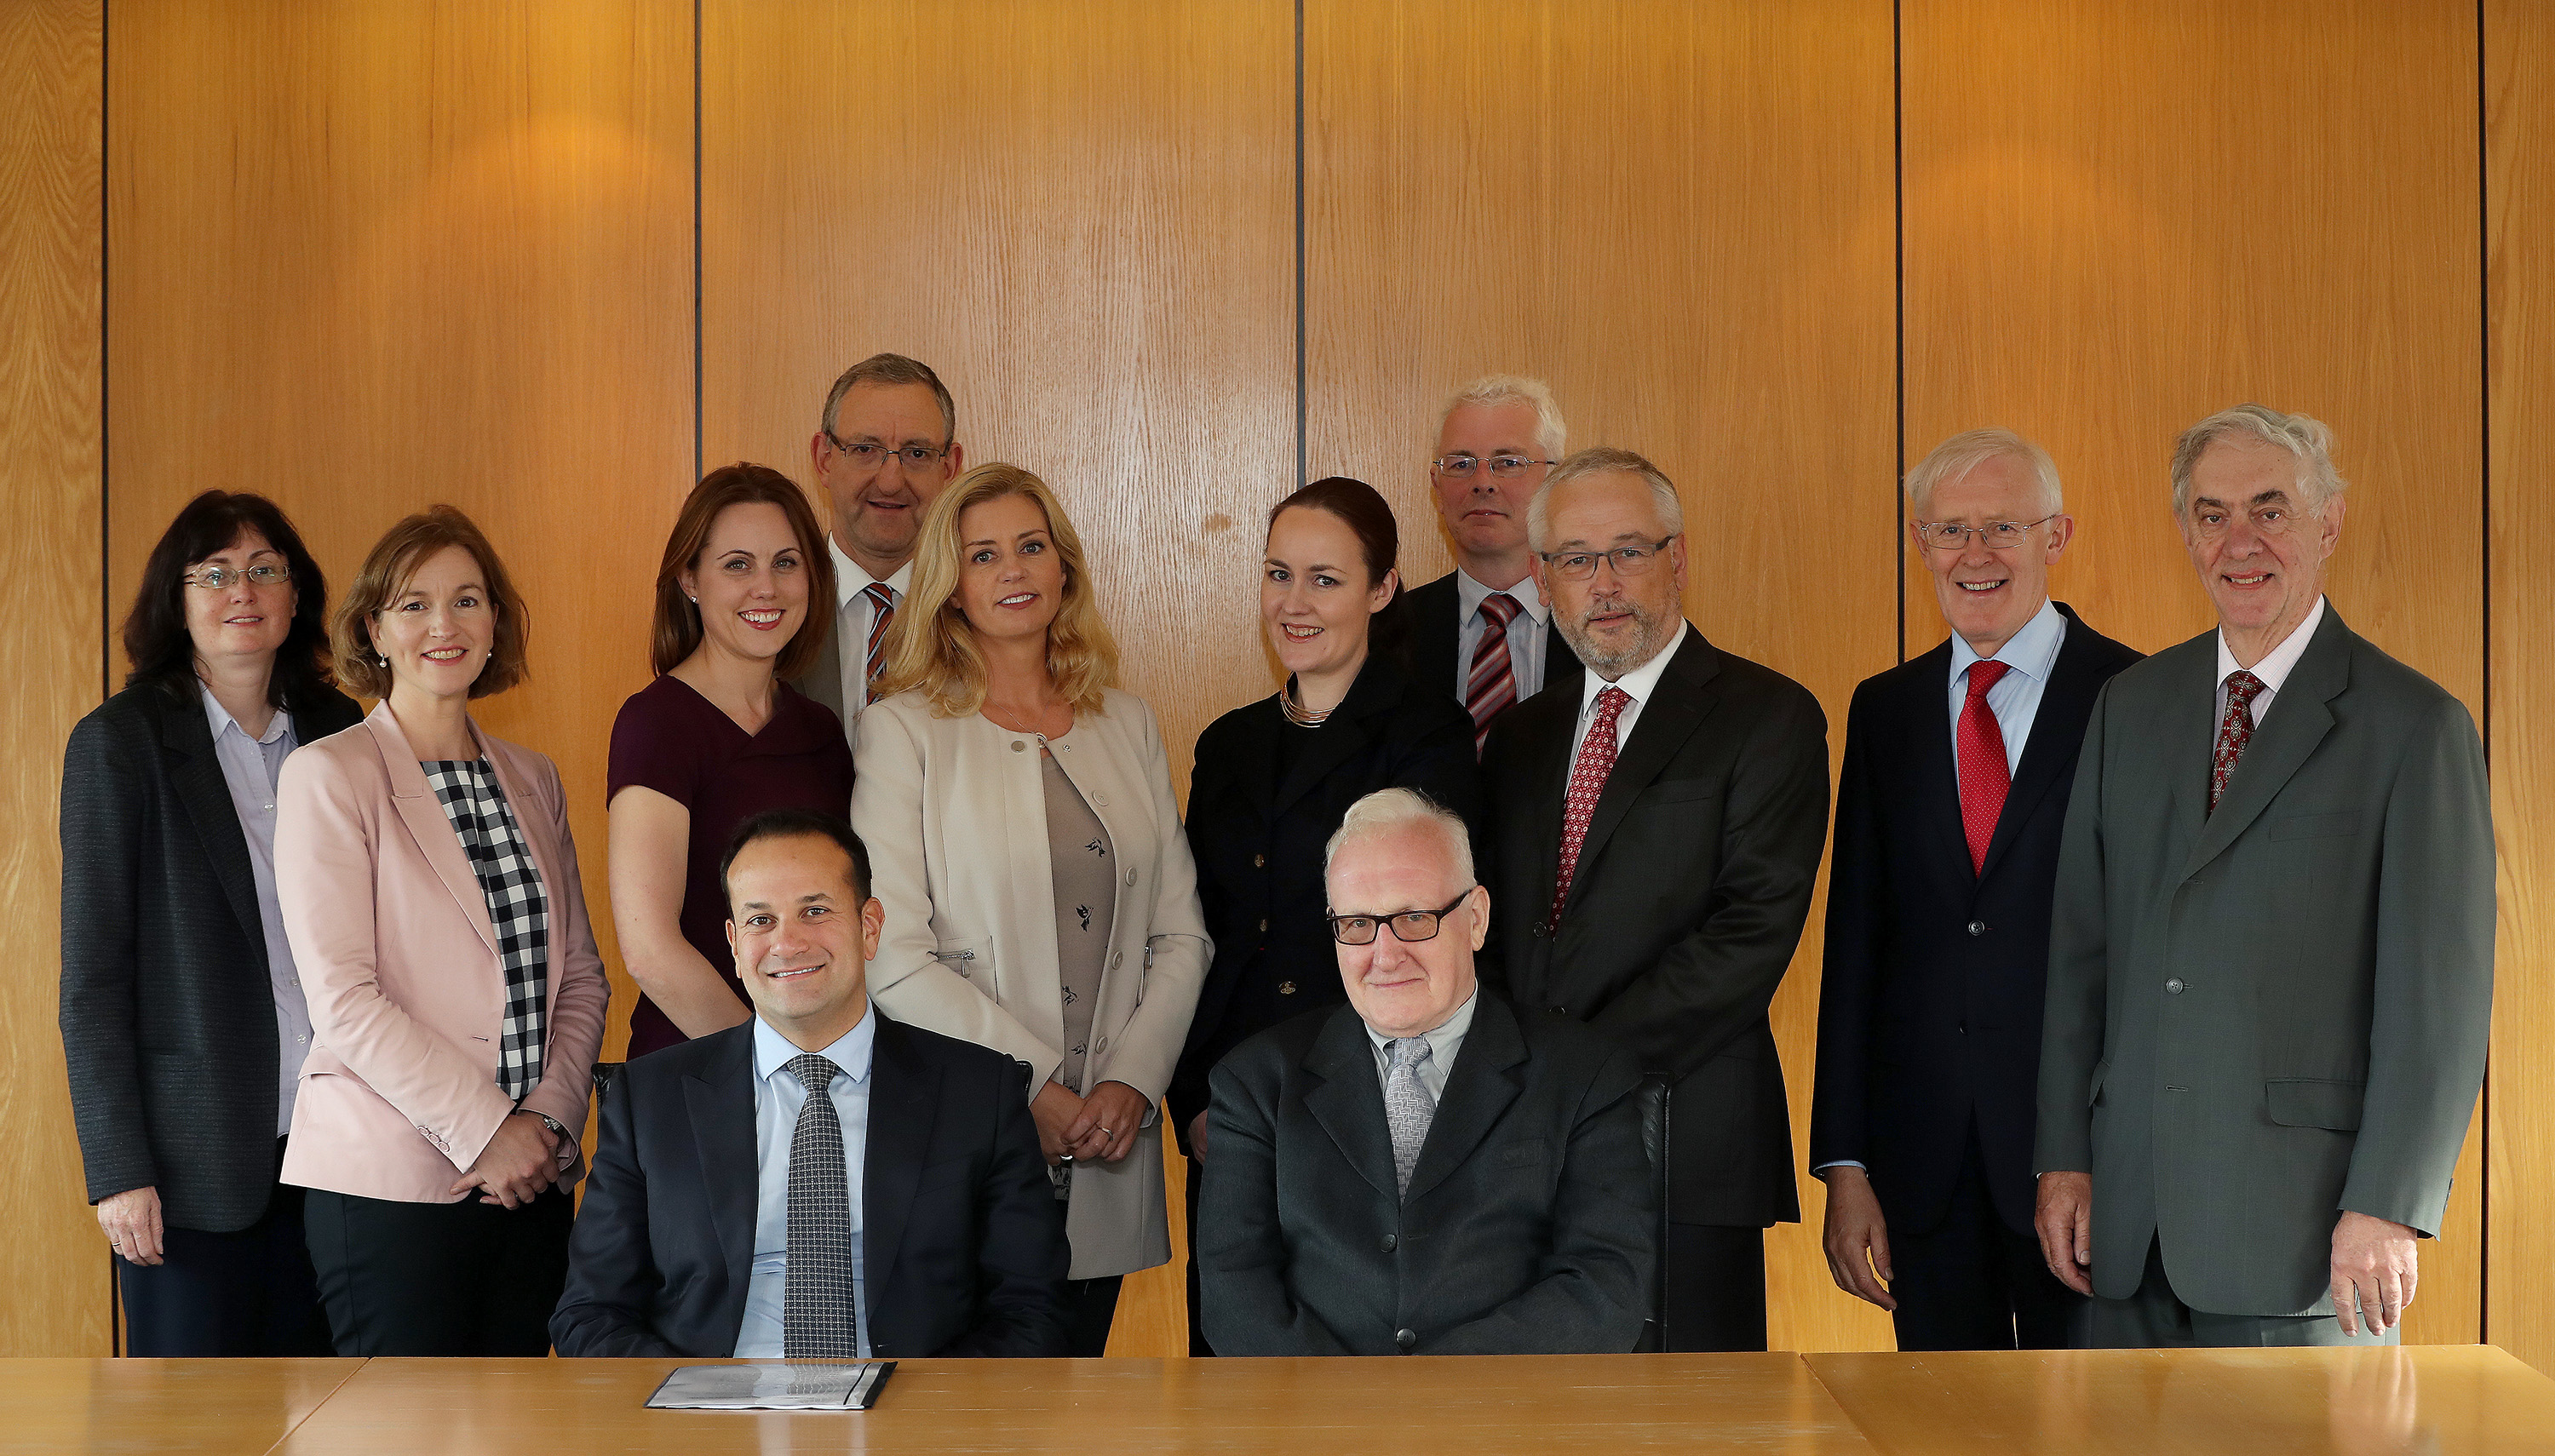 Pensions Council photo with Minister Varadkar